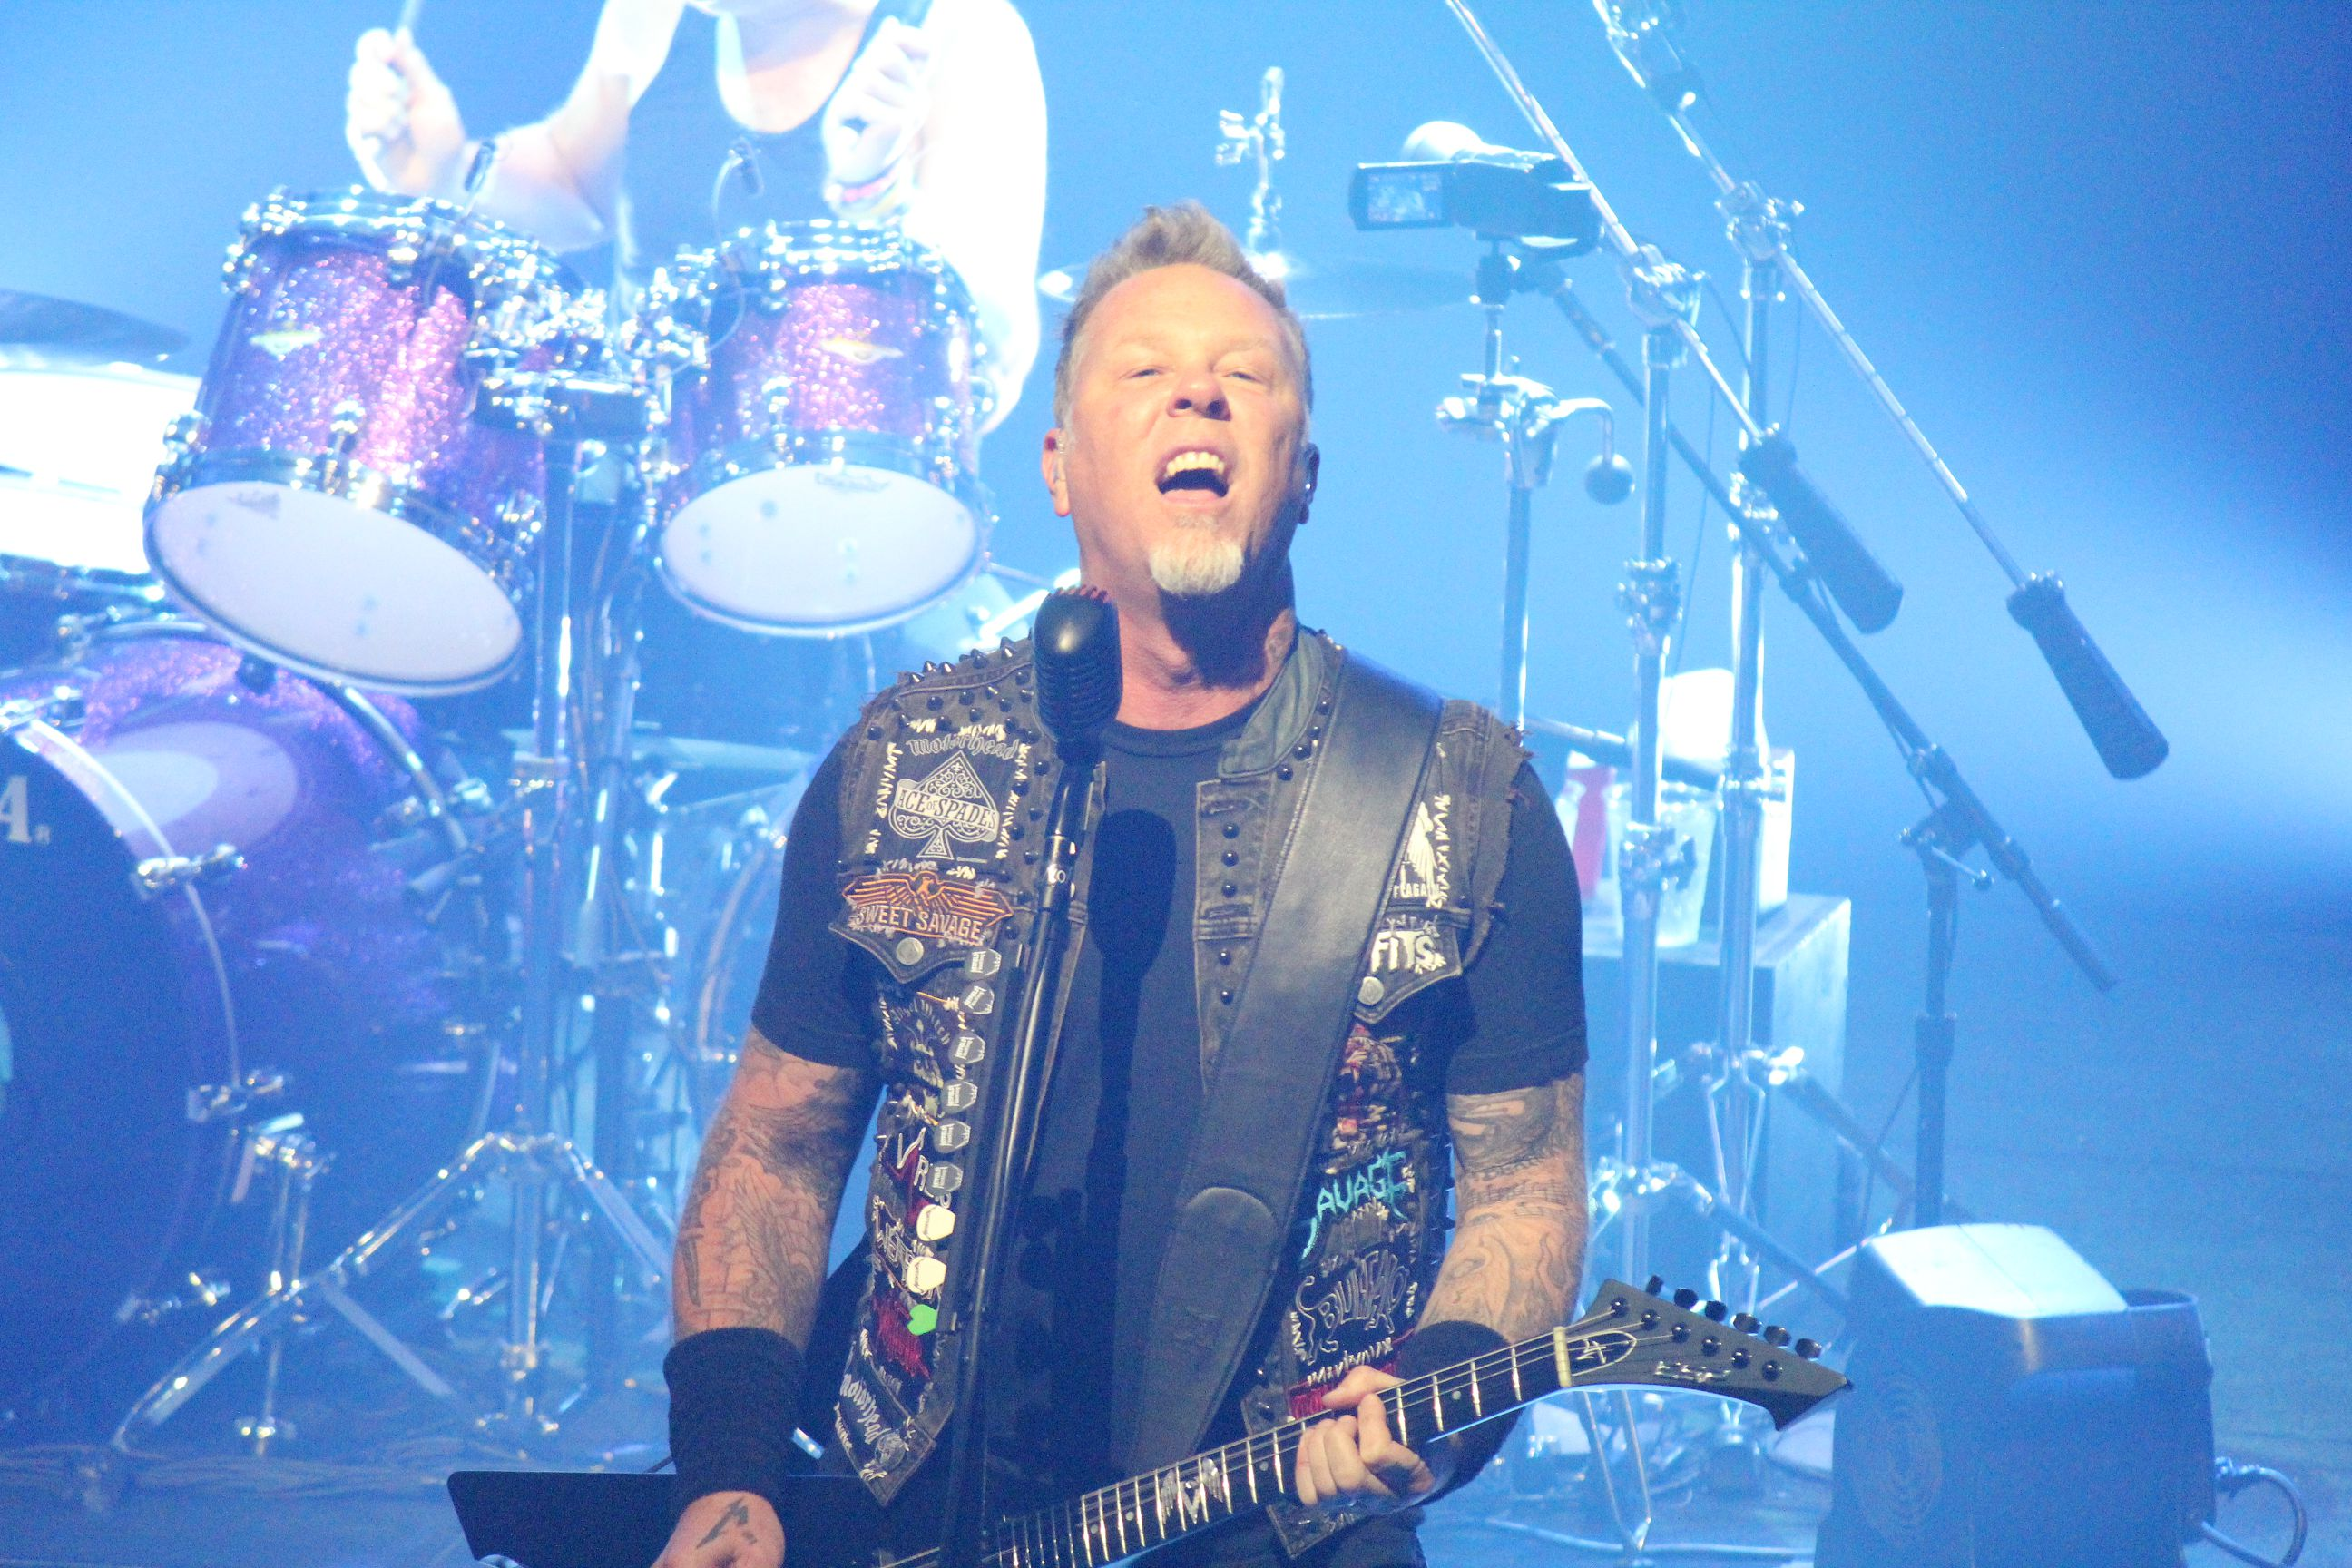 Index of /wp-content/flagallery/concert-review-metallica-at-webster-hall